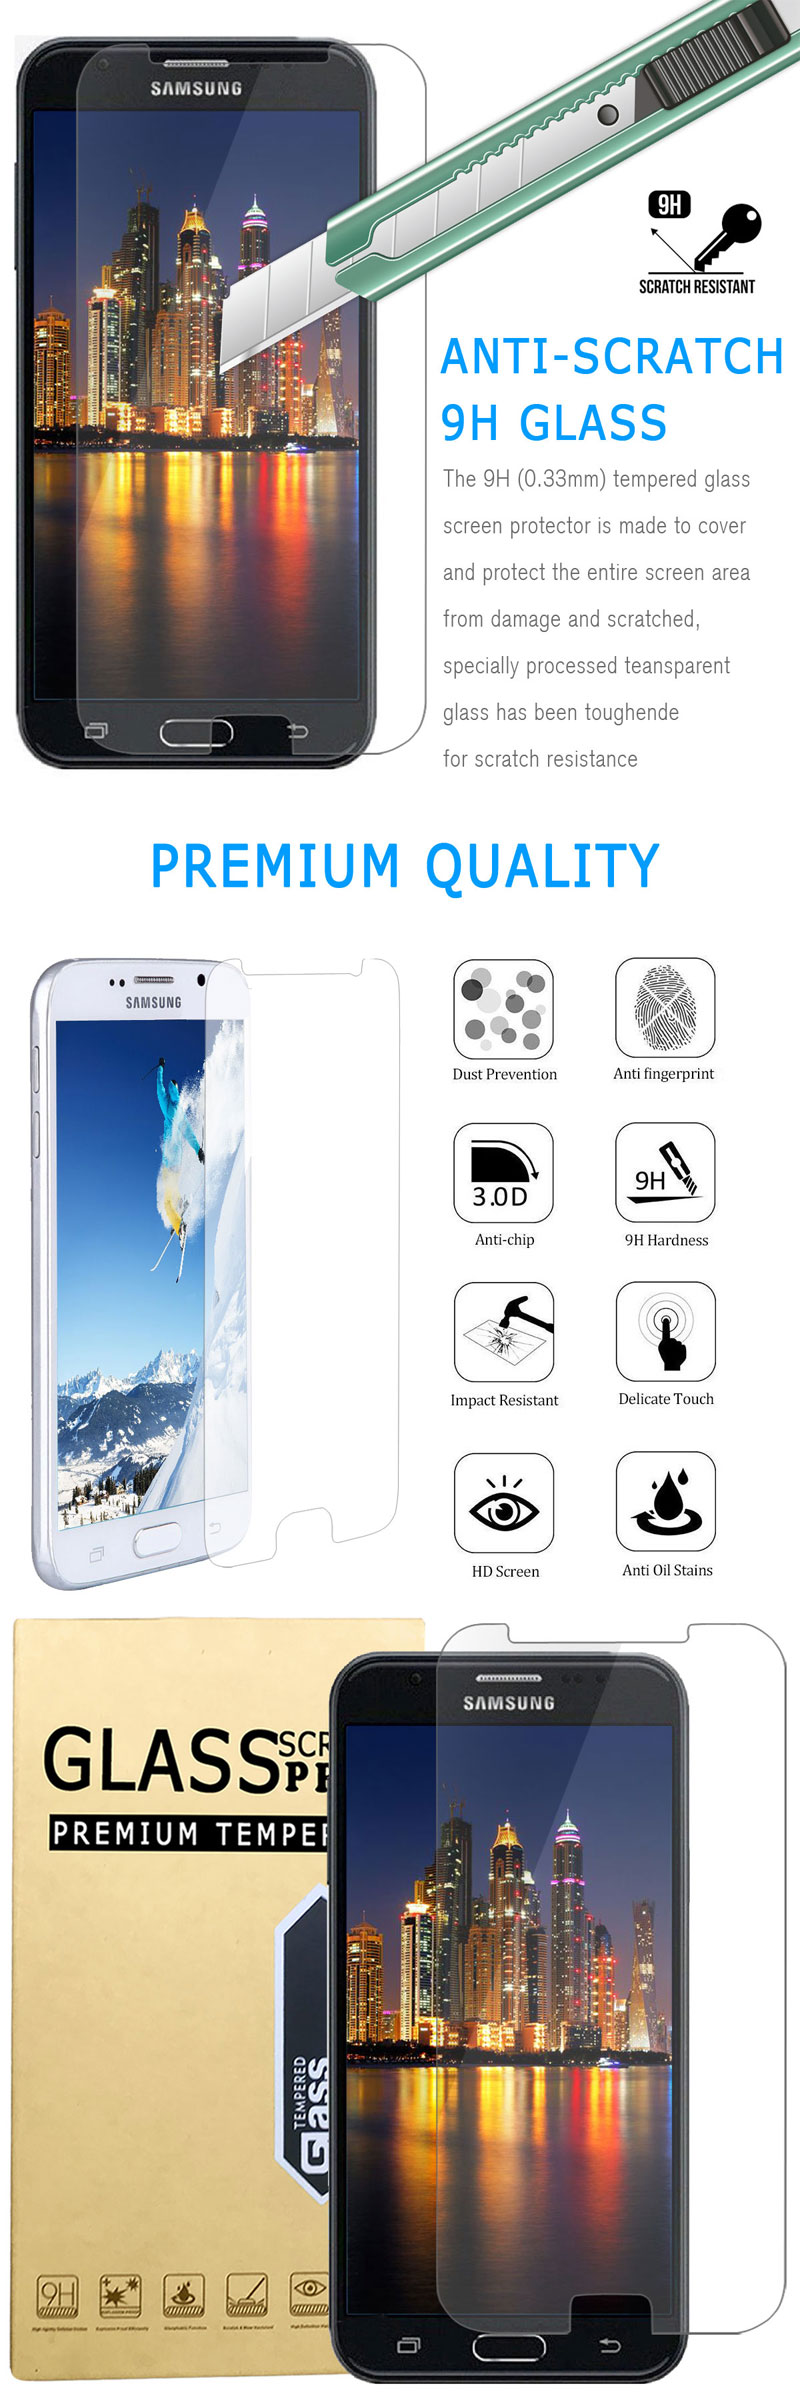 Tempered Glass Screen Protector ly the accessories is included the phone is NOT included